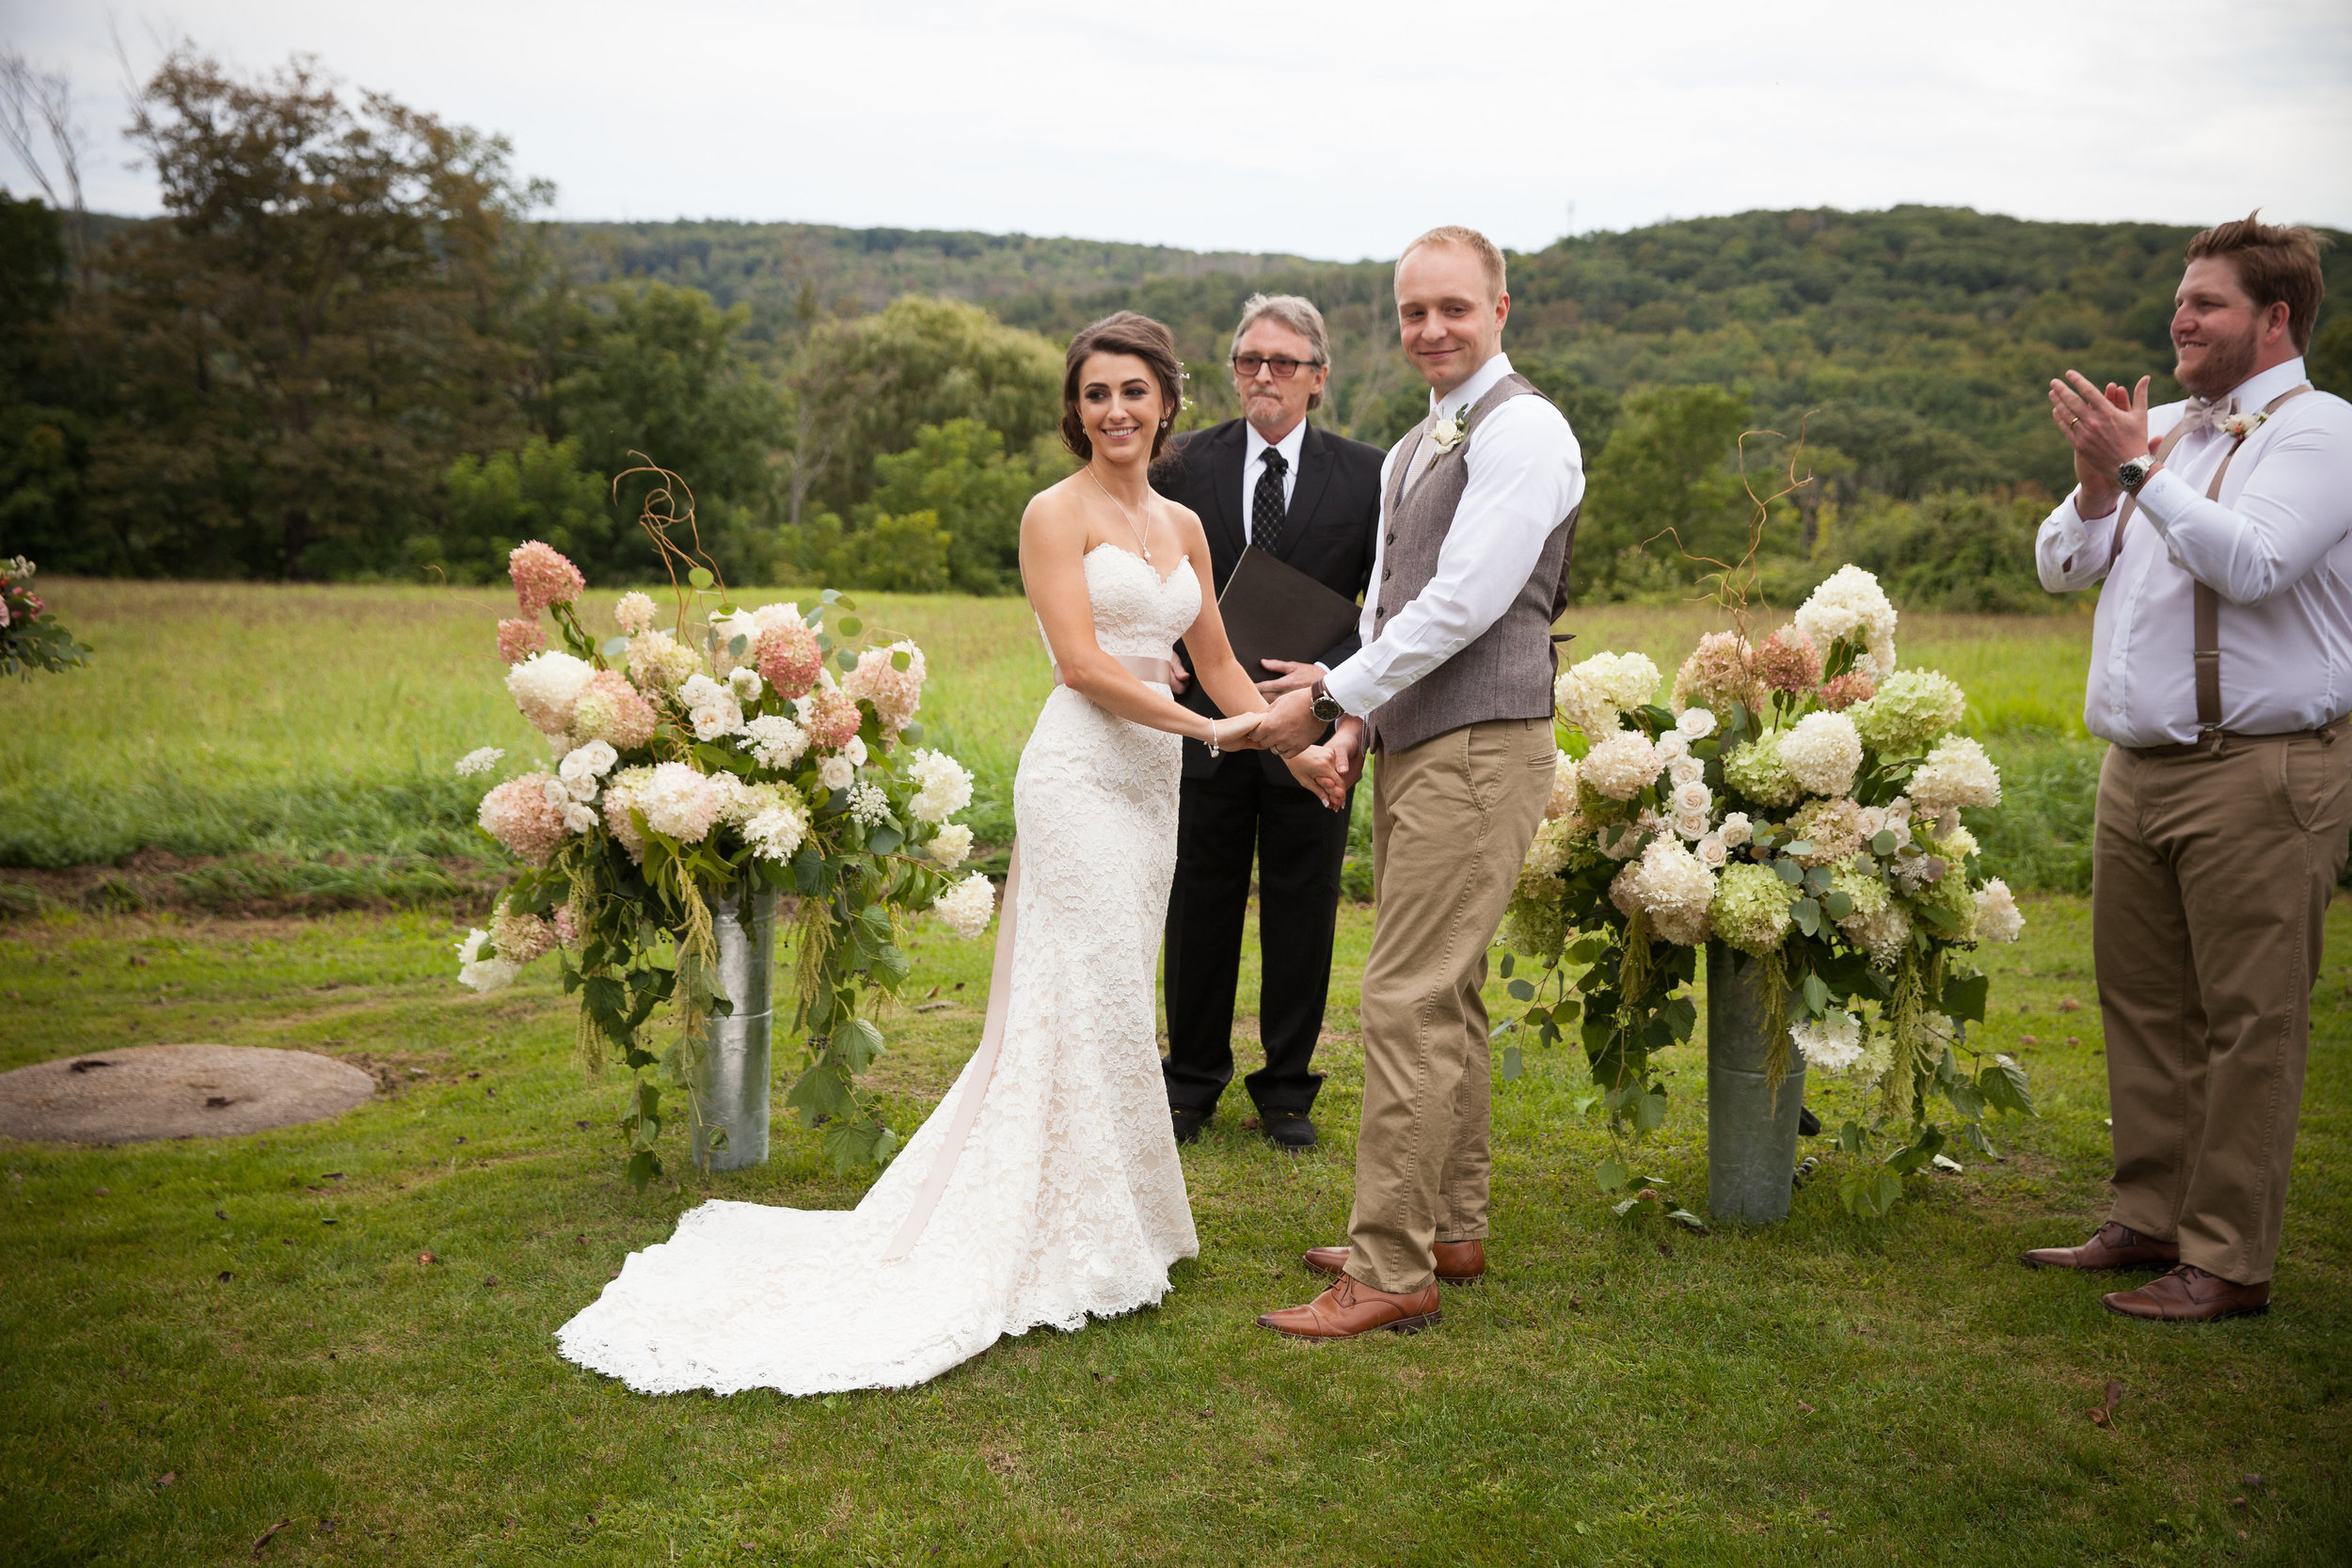 Ceremony back drop - Pearl Weddings & Events